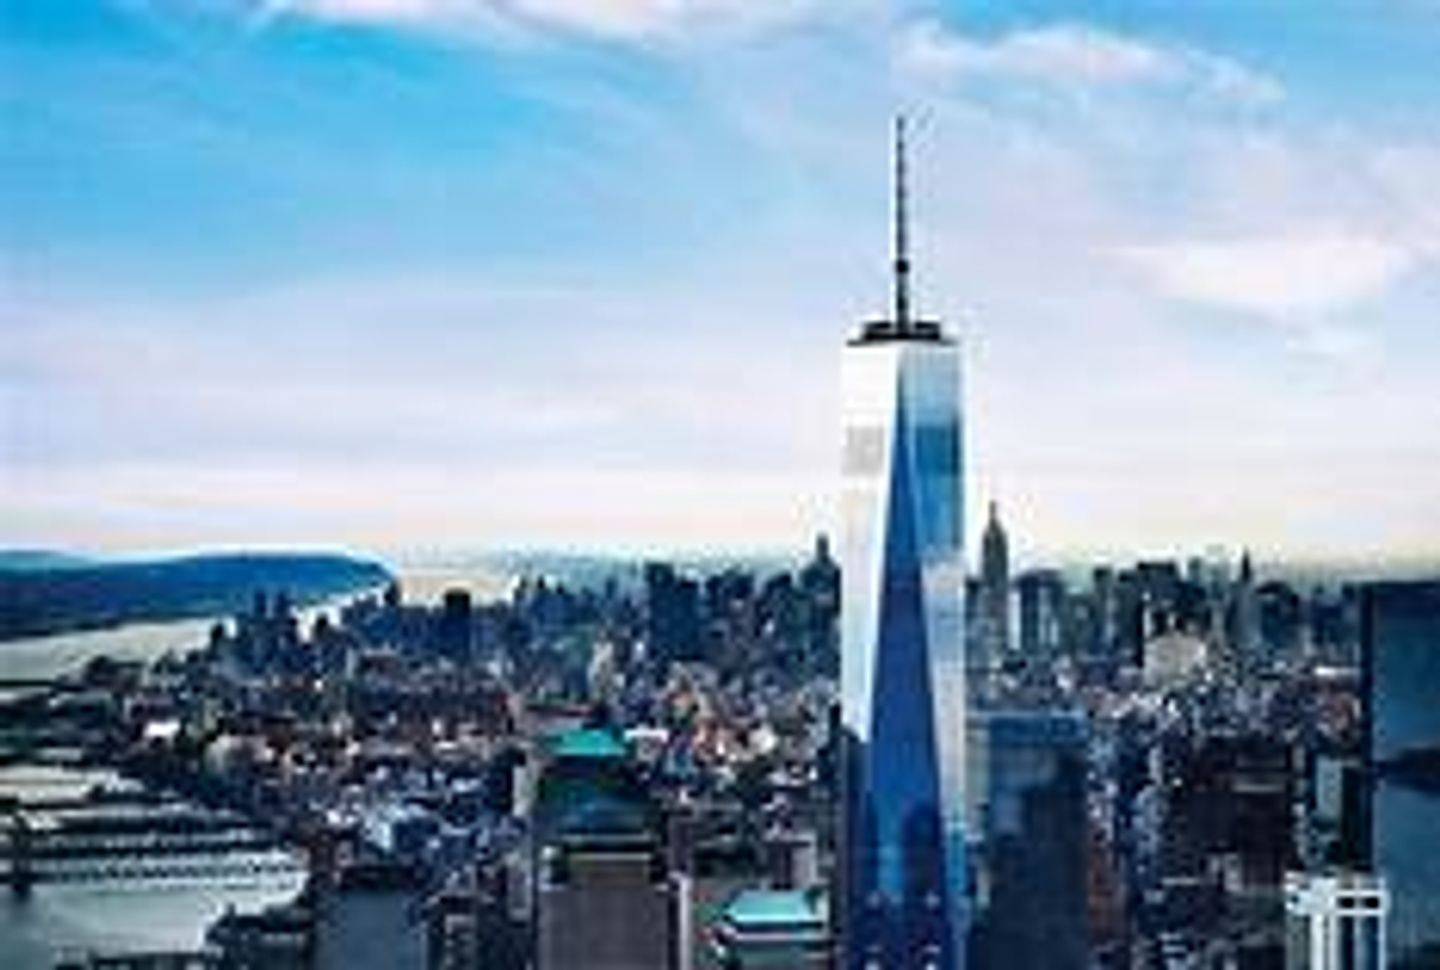 ONE WORLD OBSERVATORY AND EATALY